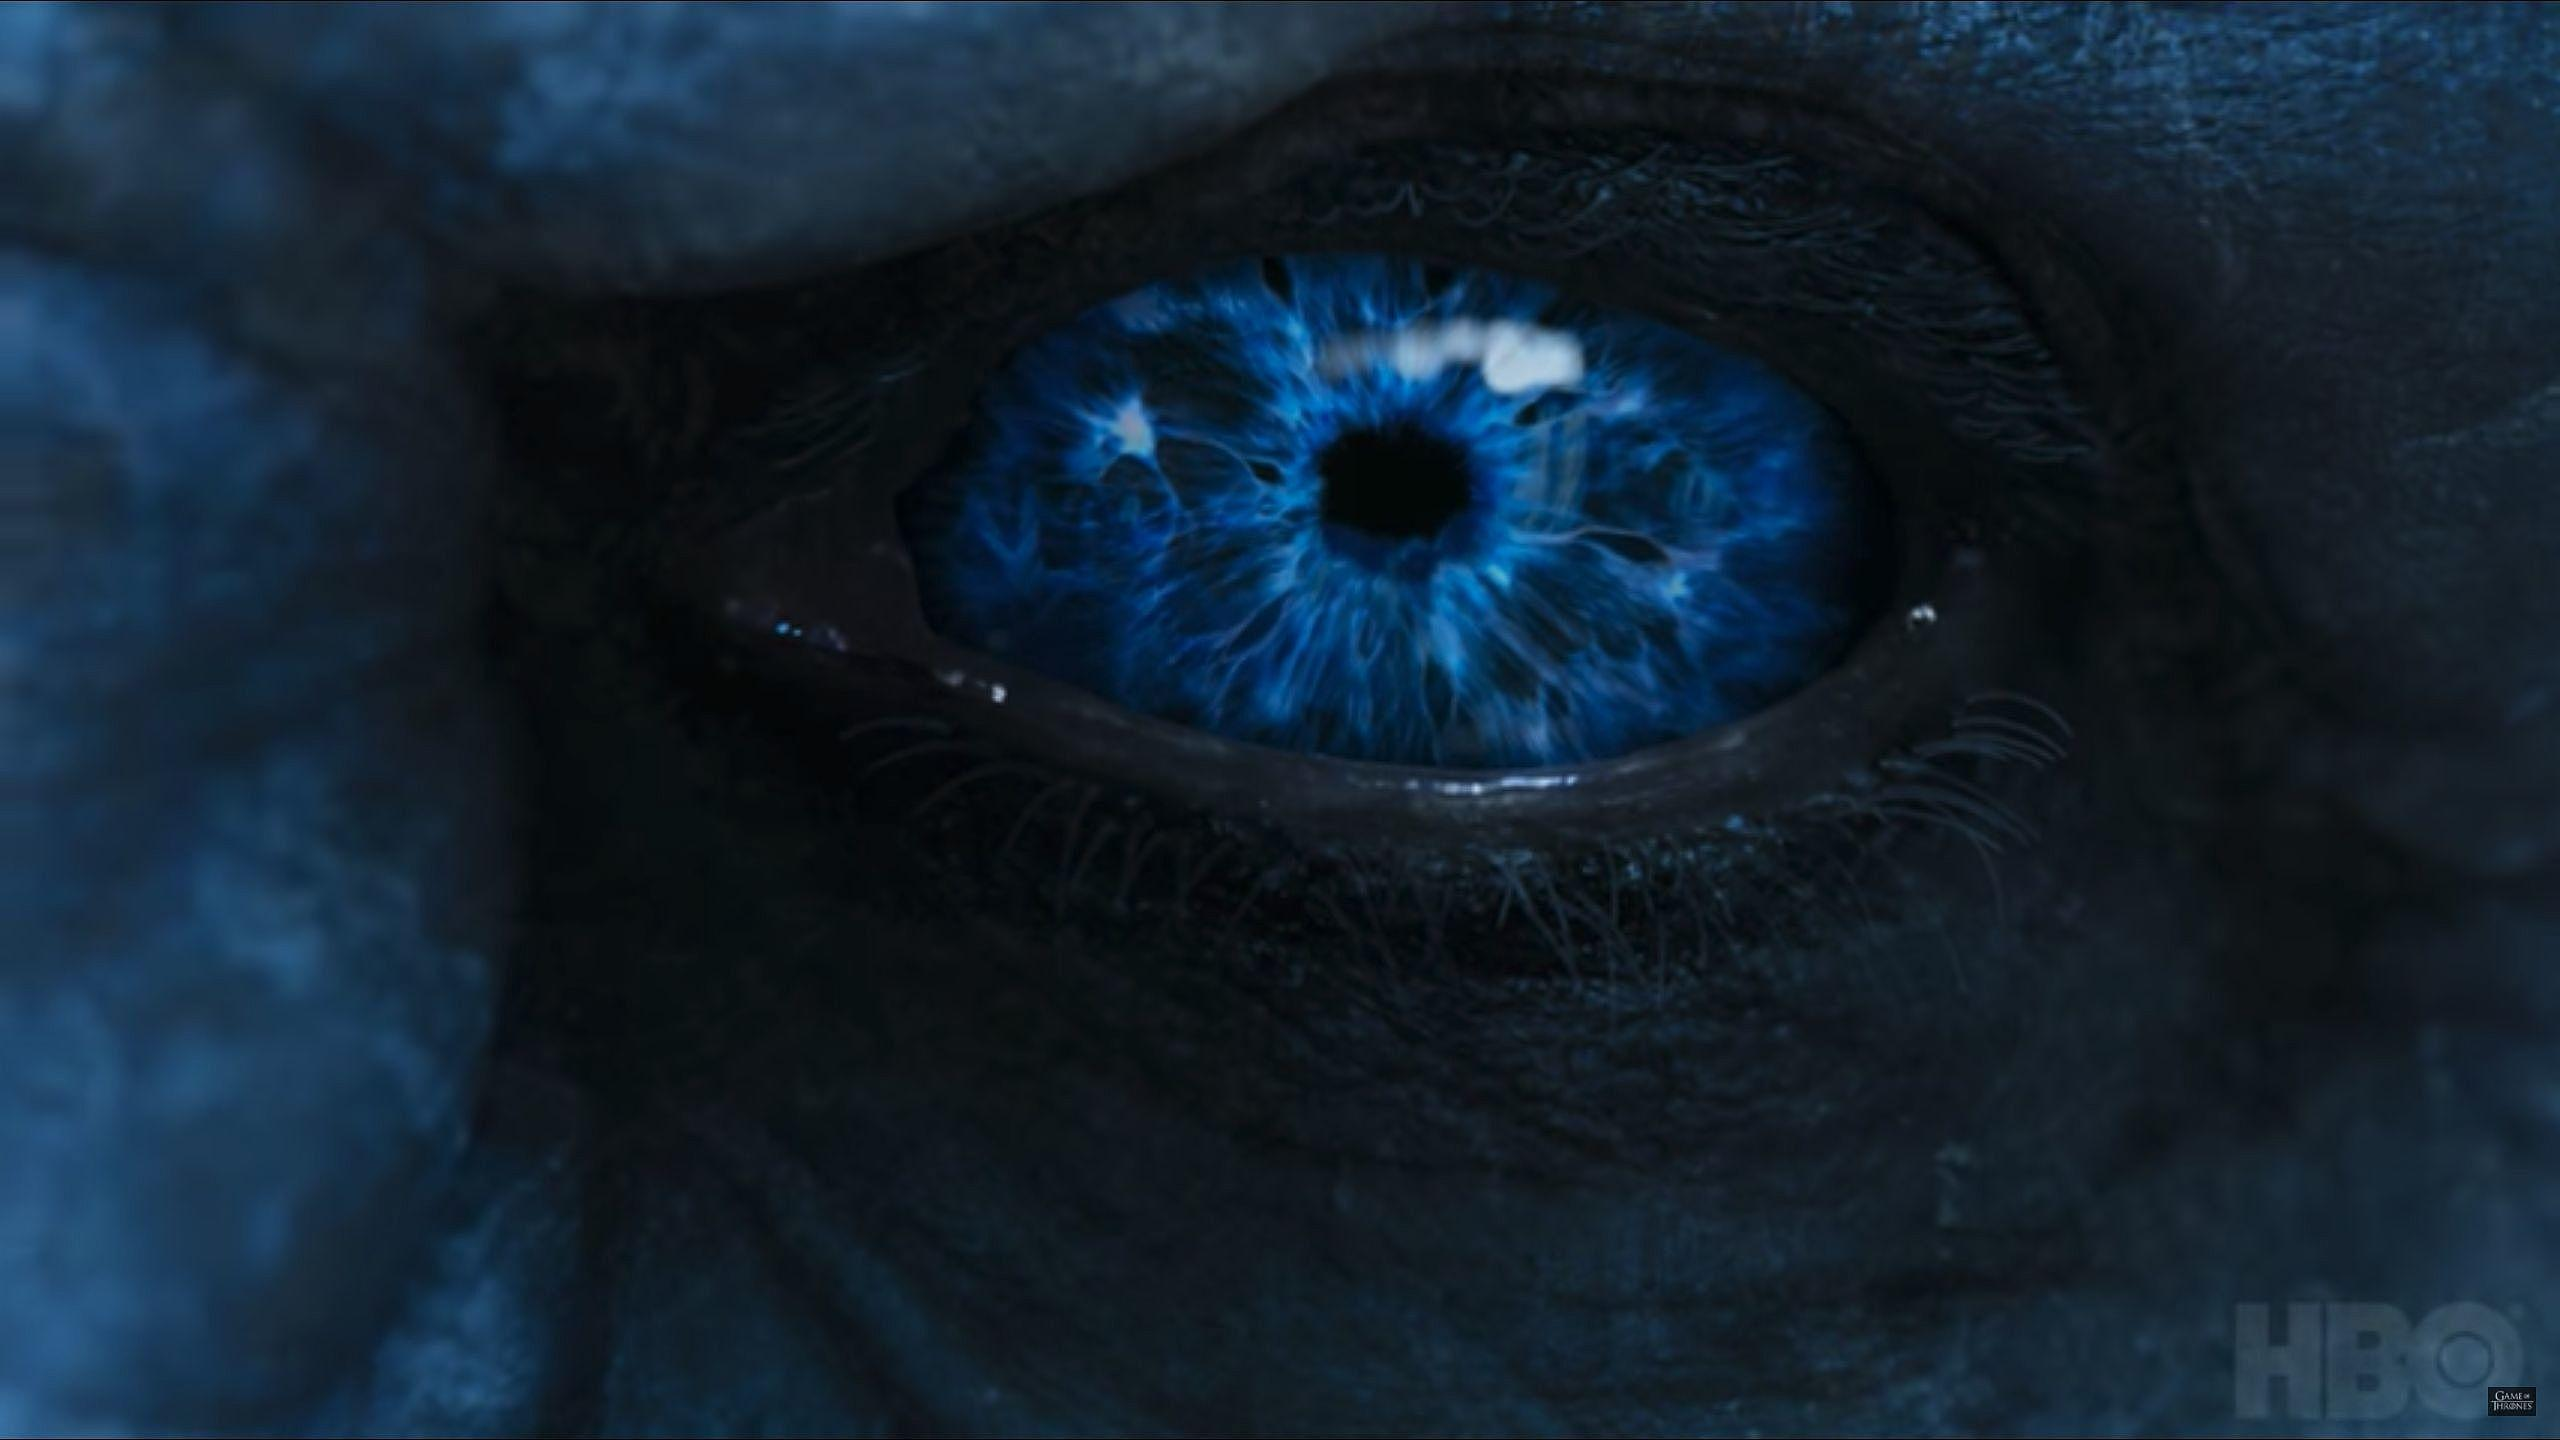 Download Game Of Thrones Wallpaper 2560x1440 Hd Backgrounds